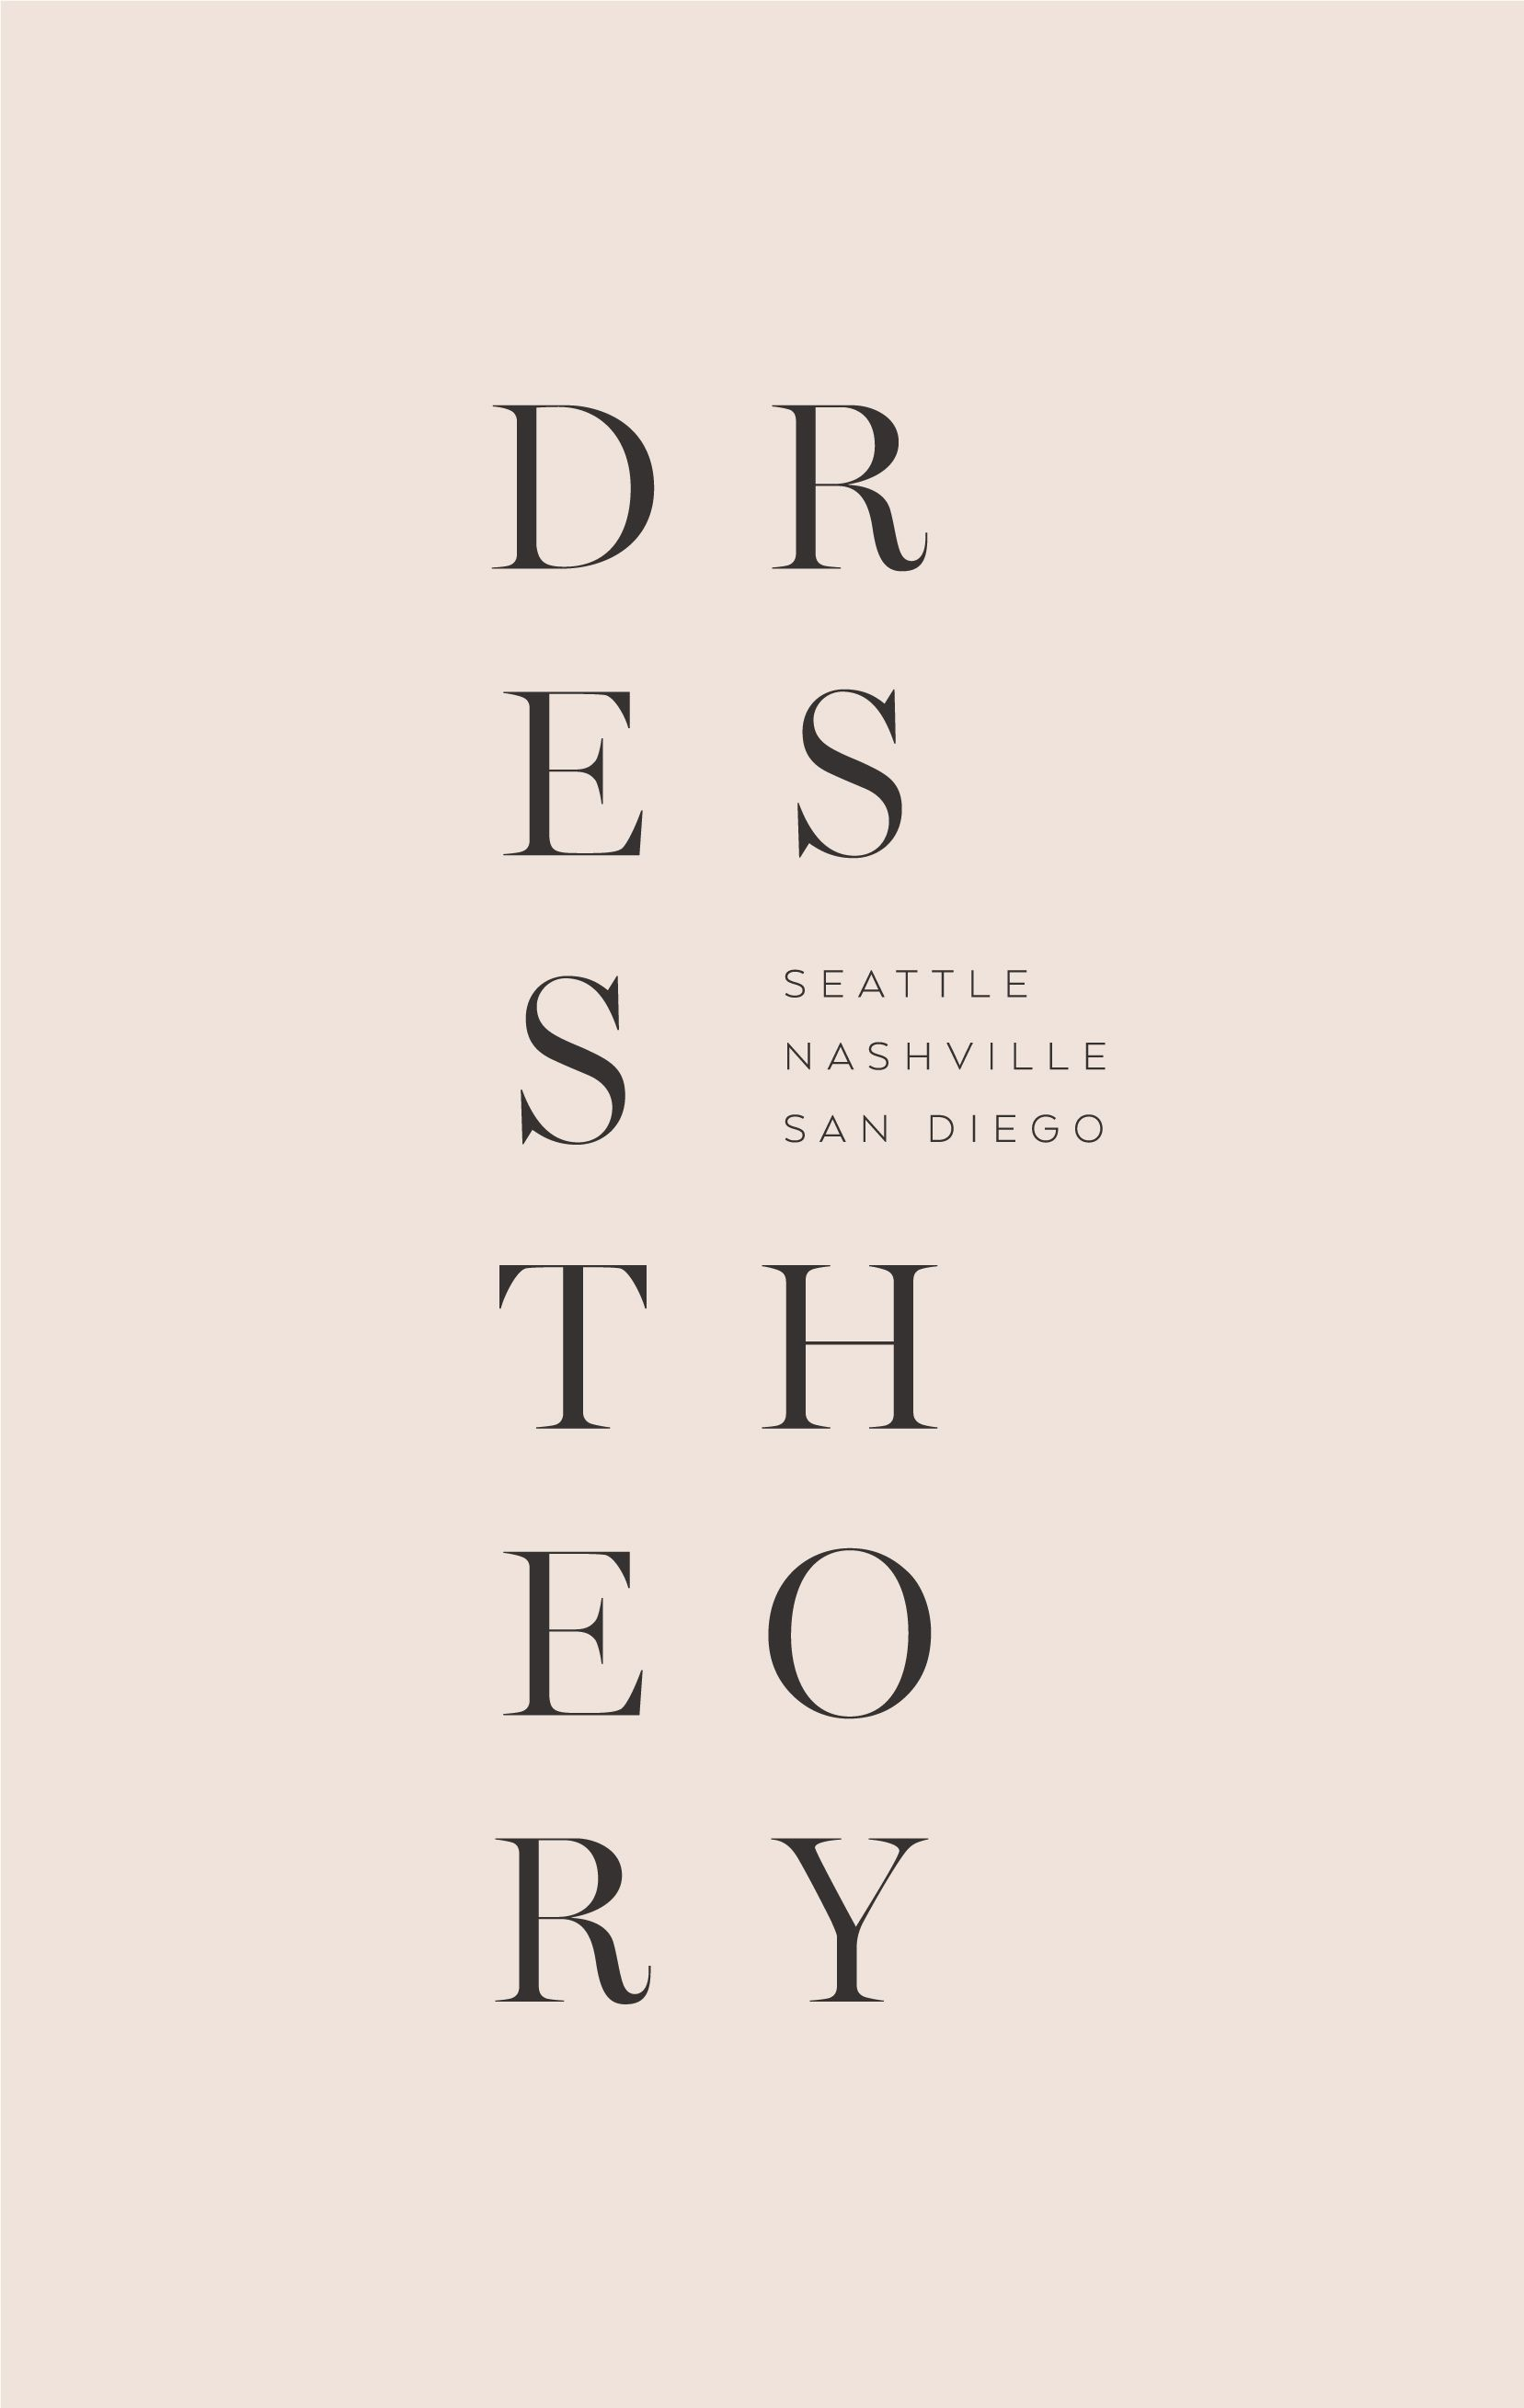 This Is Supposed To Read Dress Theory But My Brain Sees The Word Destroy And A Misspelling Of Dysentery